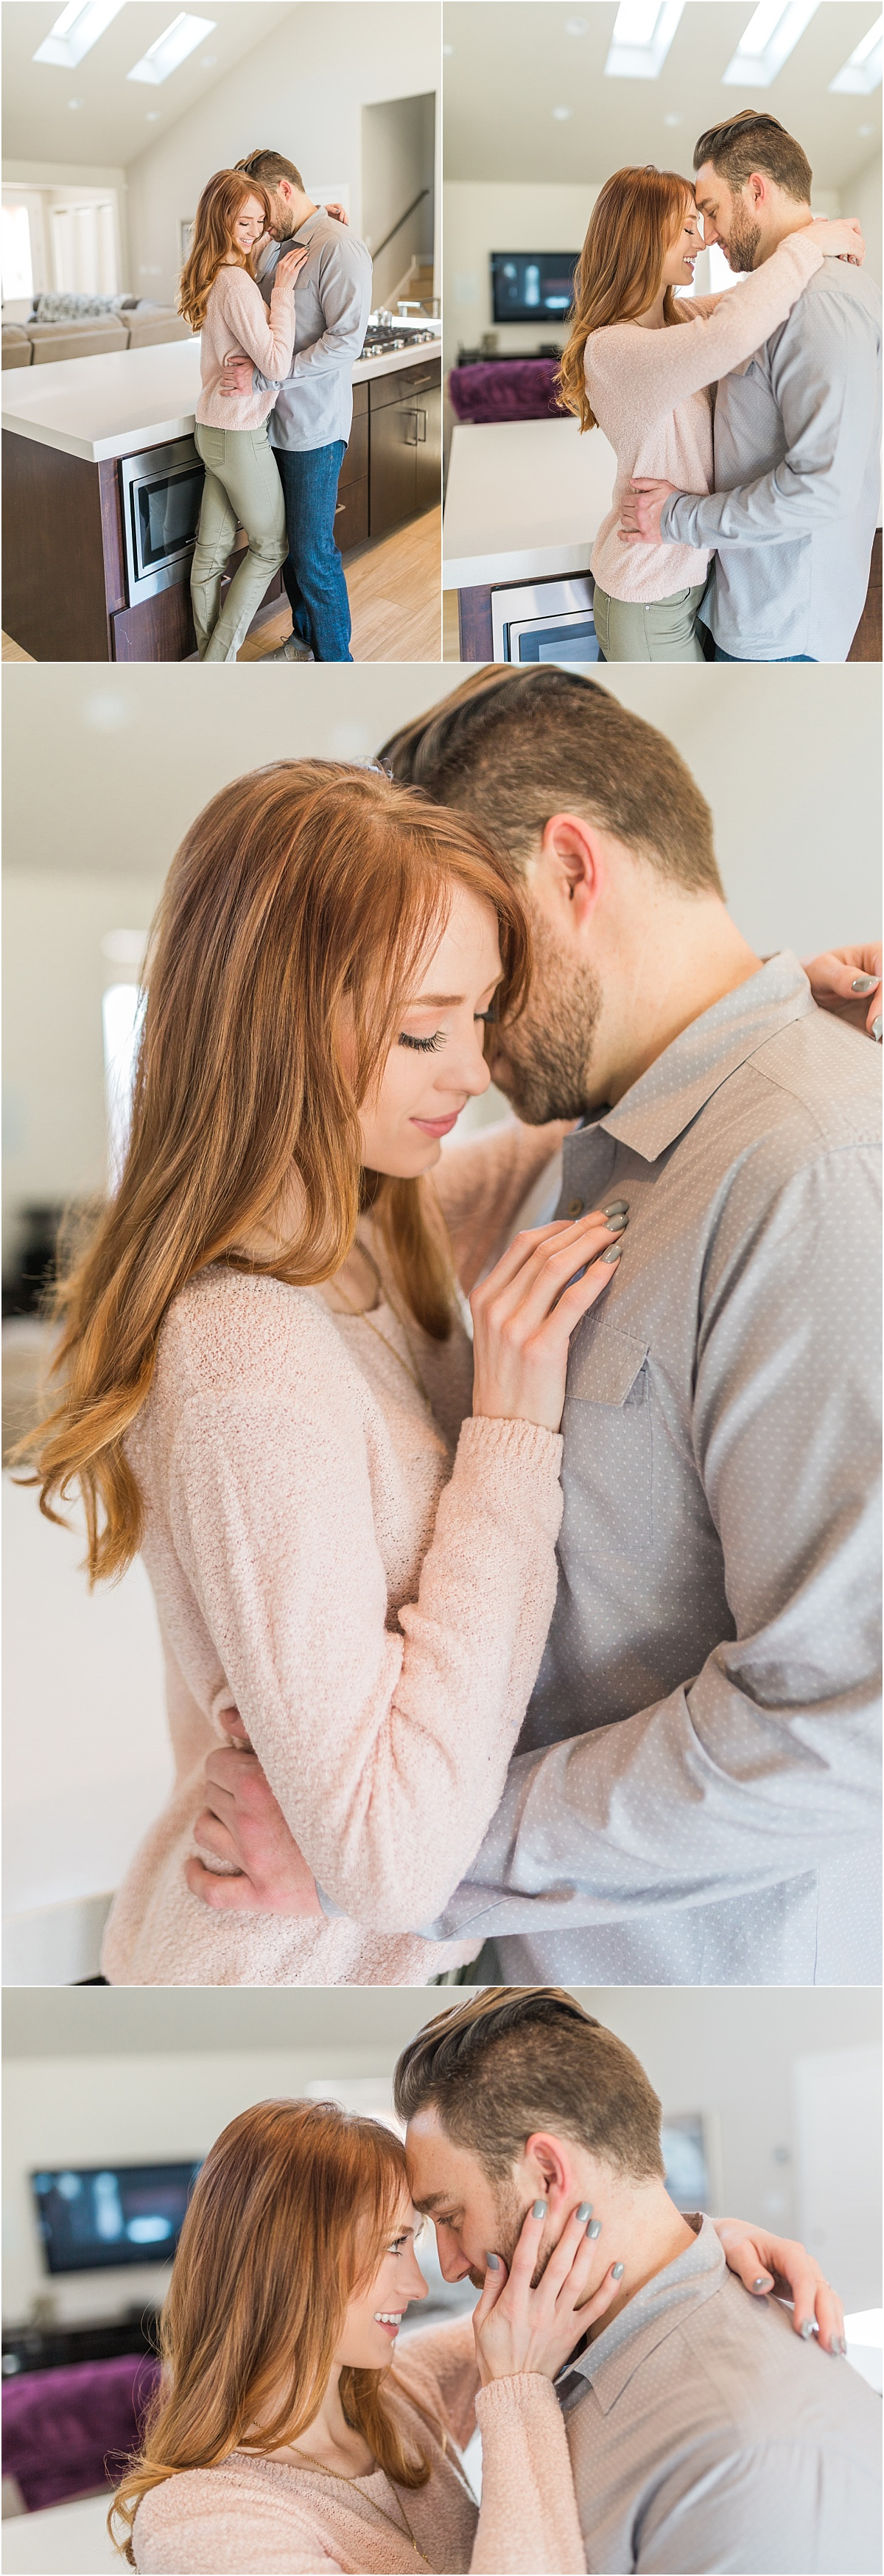 Salt Lake City Couples Session | In-home Lifestyle Photography, Utah